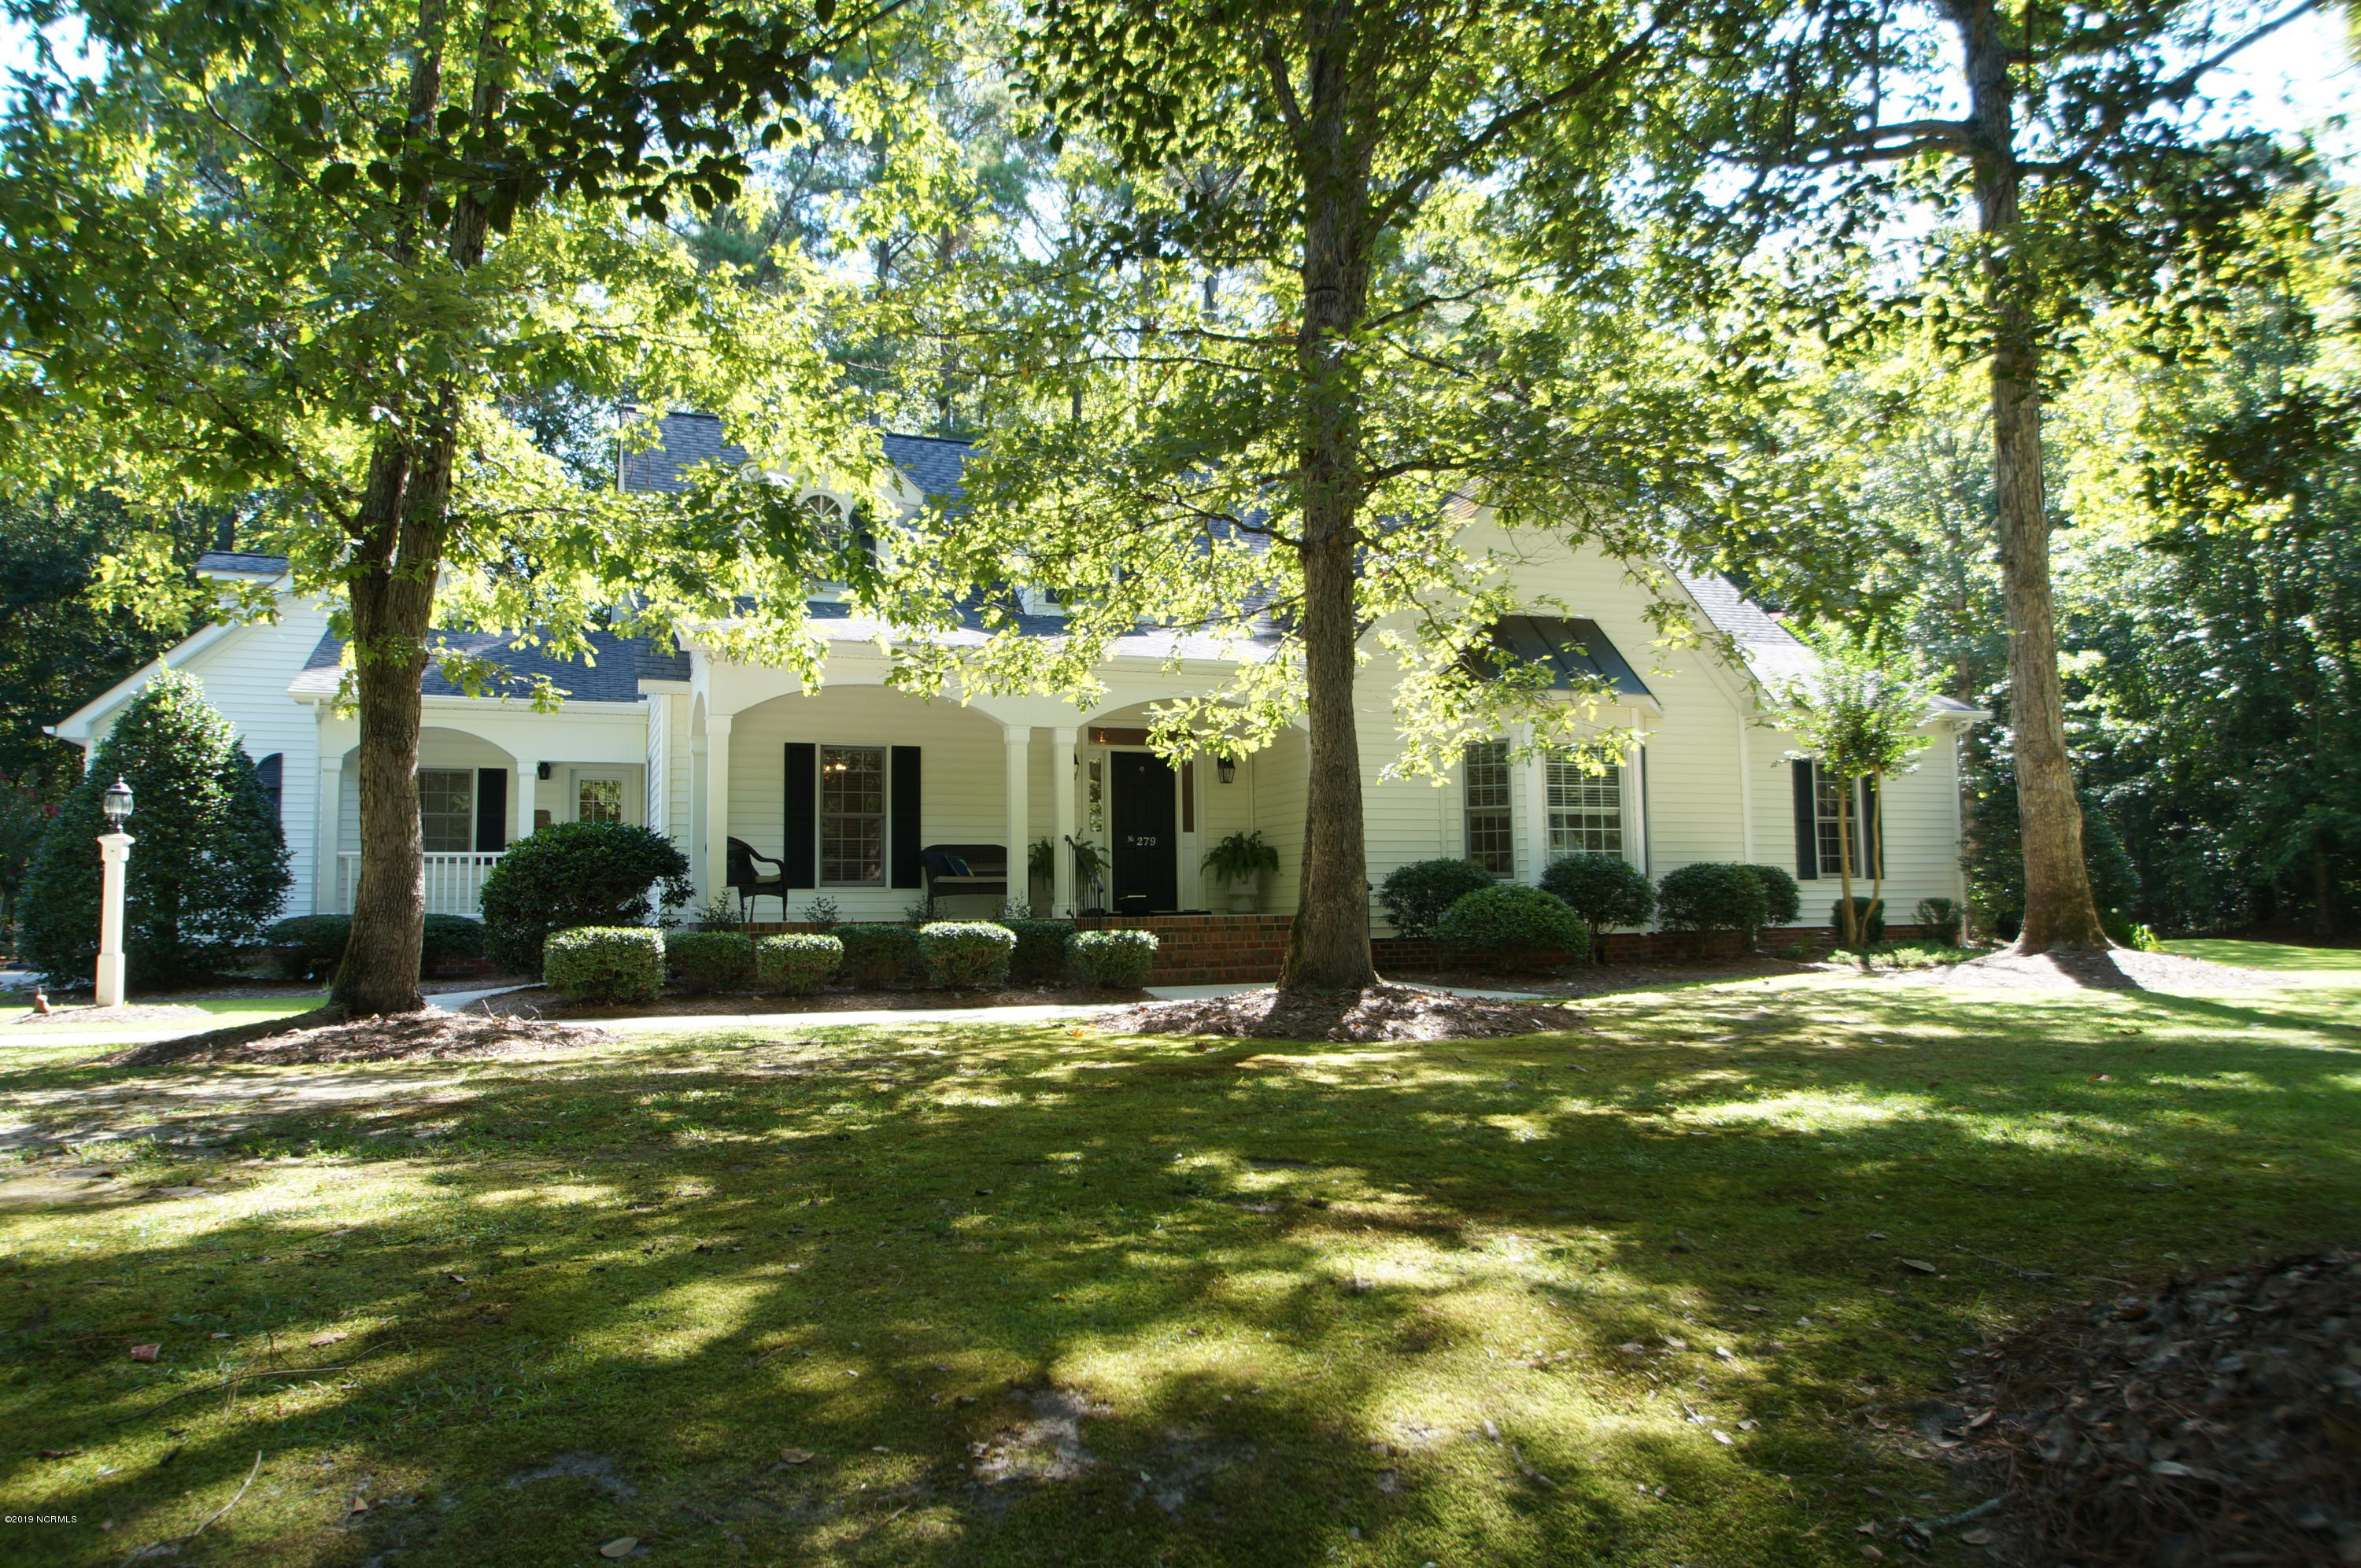 Property for sale at 279 Beech Cove Drive, Grimesland,  North Carolina 27837